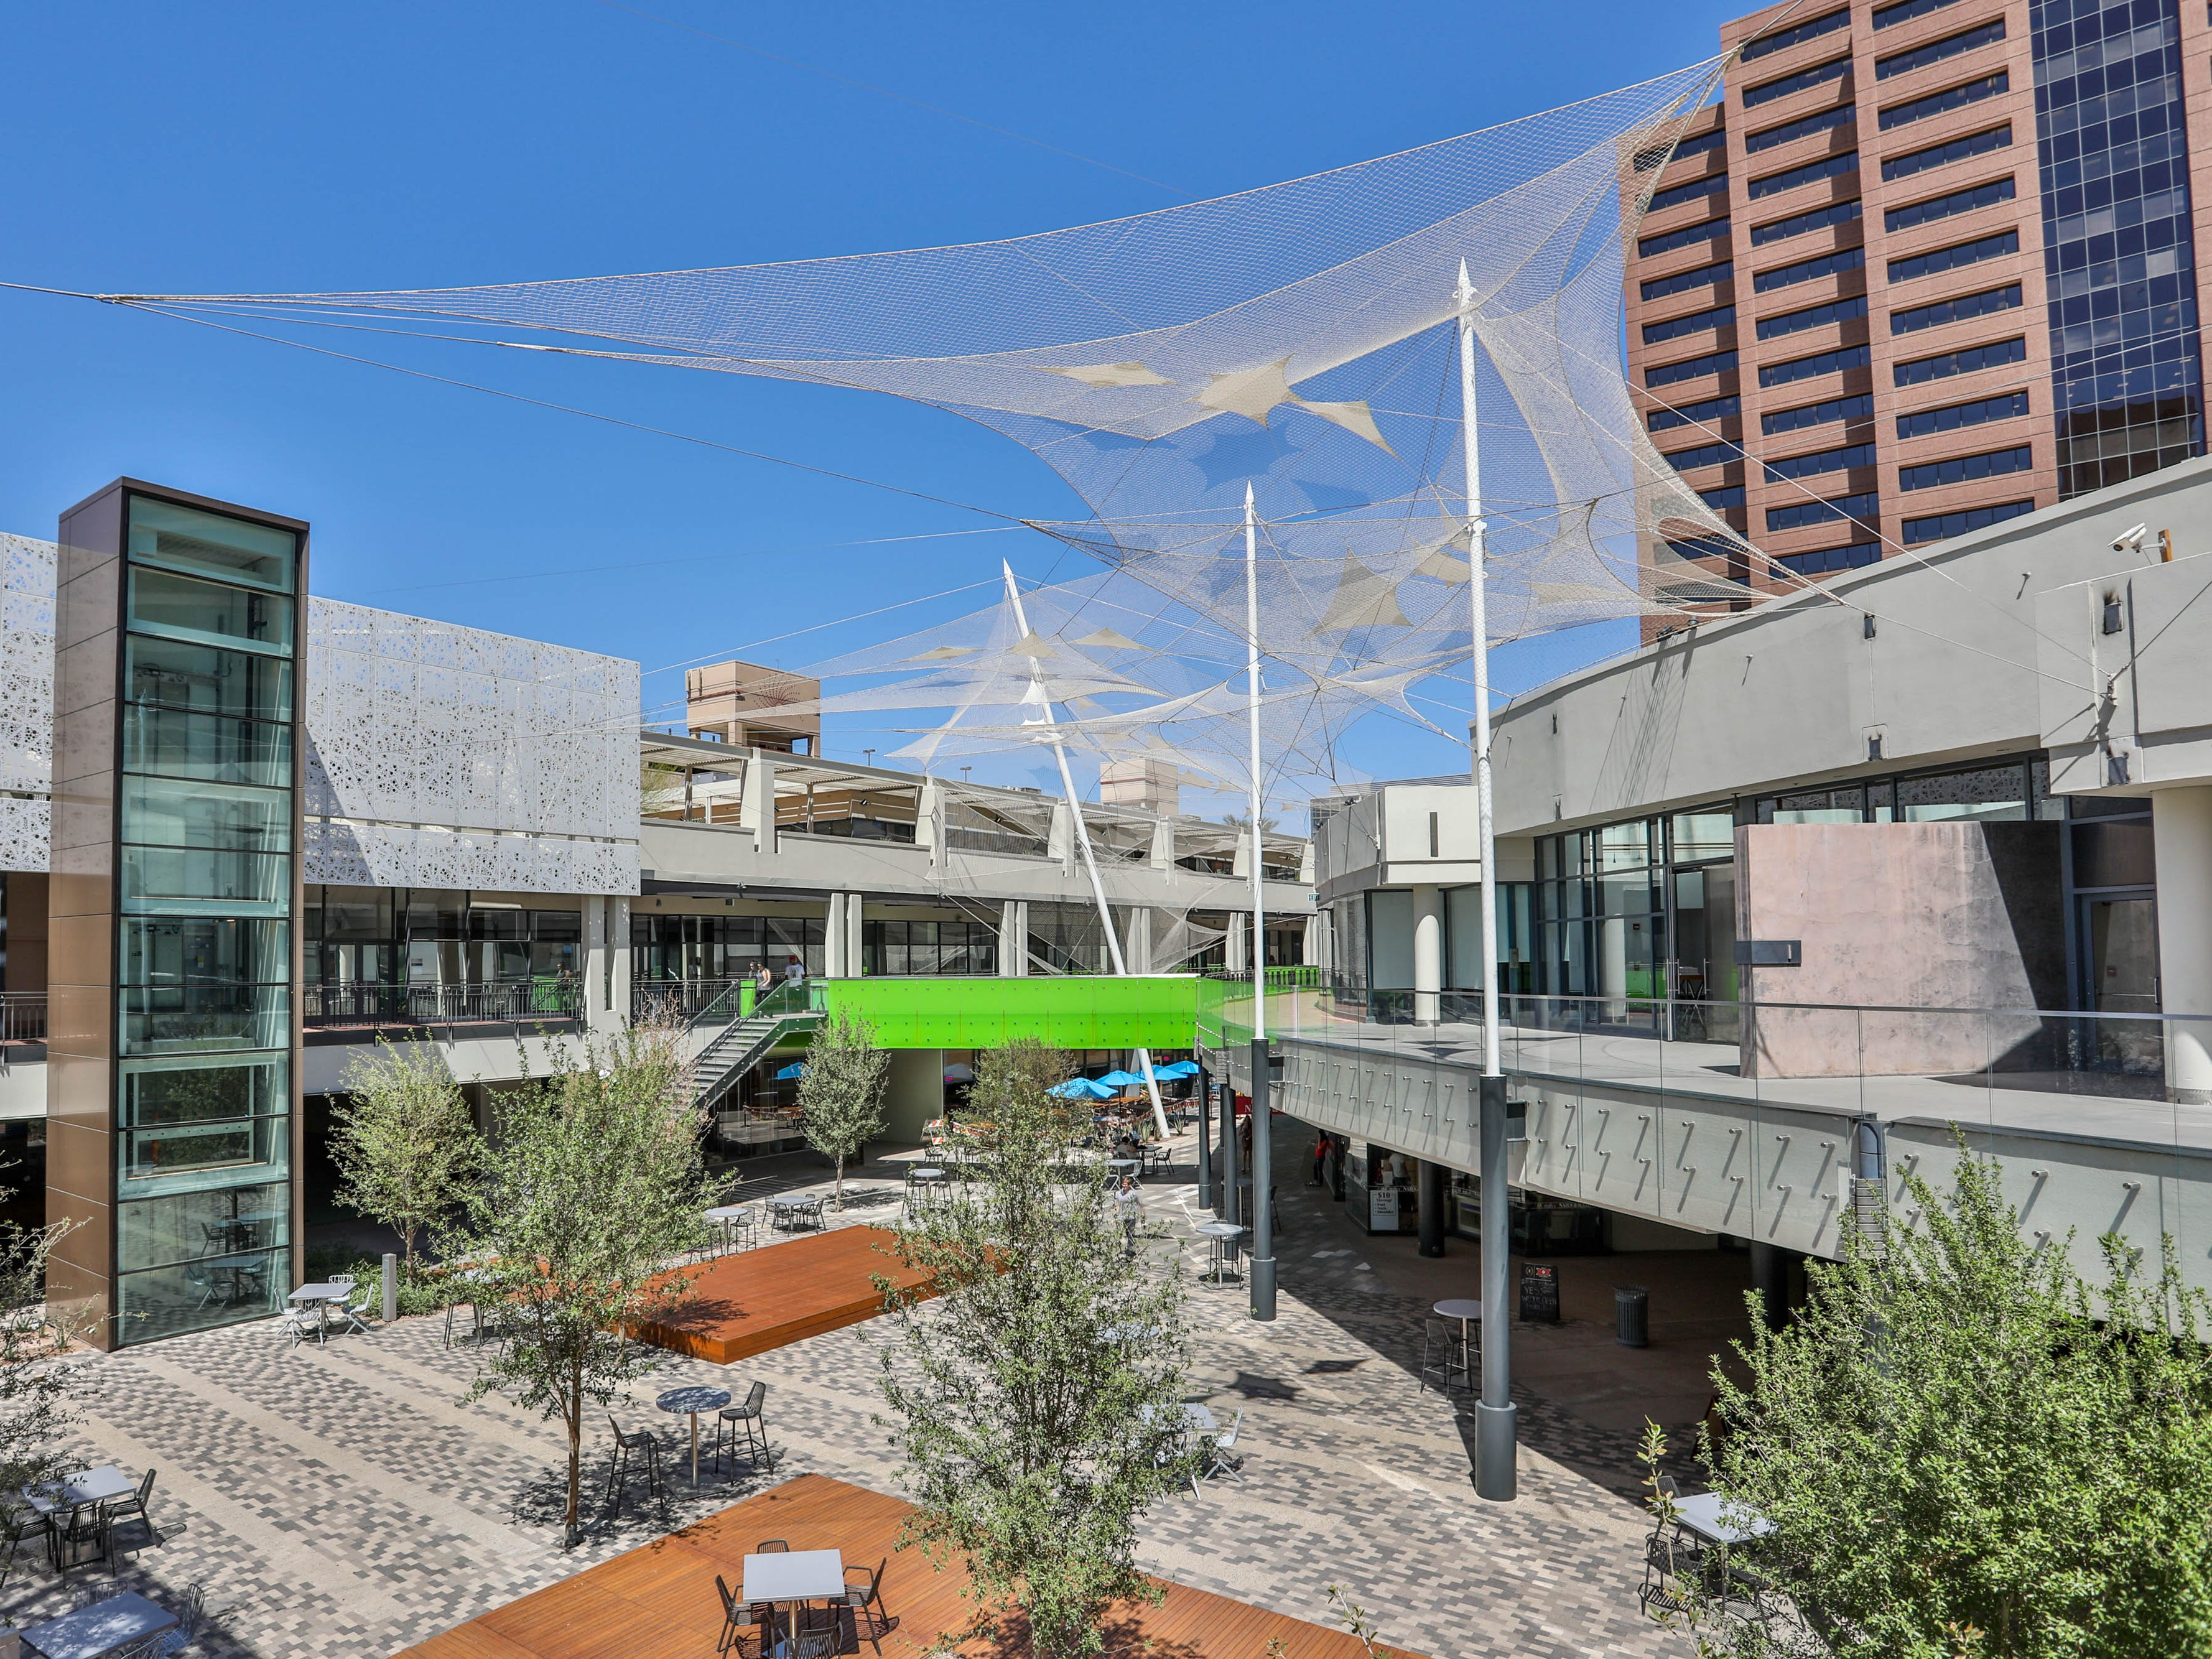 The courtyard of the Arizona Center was brightened up and new outdoor furnishings, lounge areas and shade structures were added.